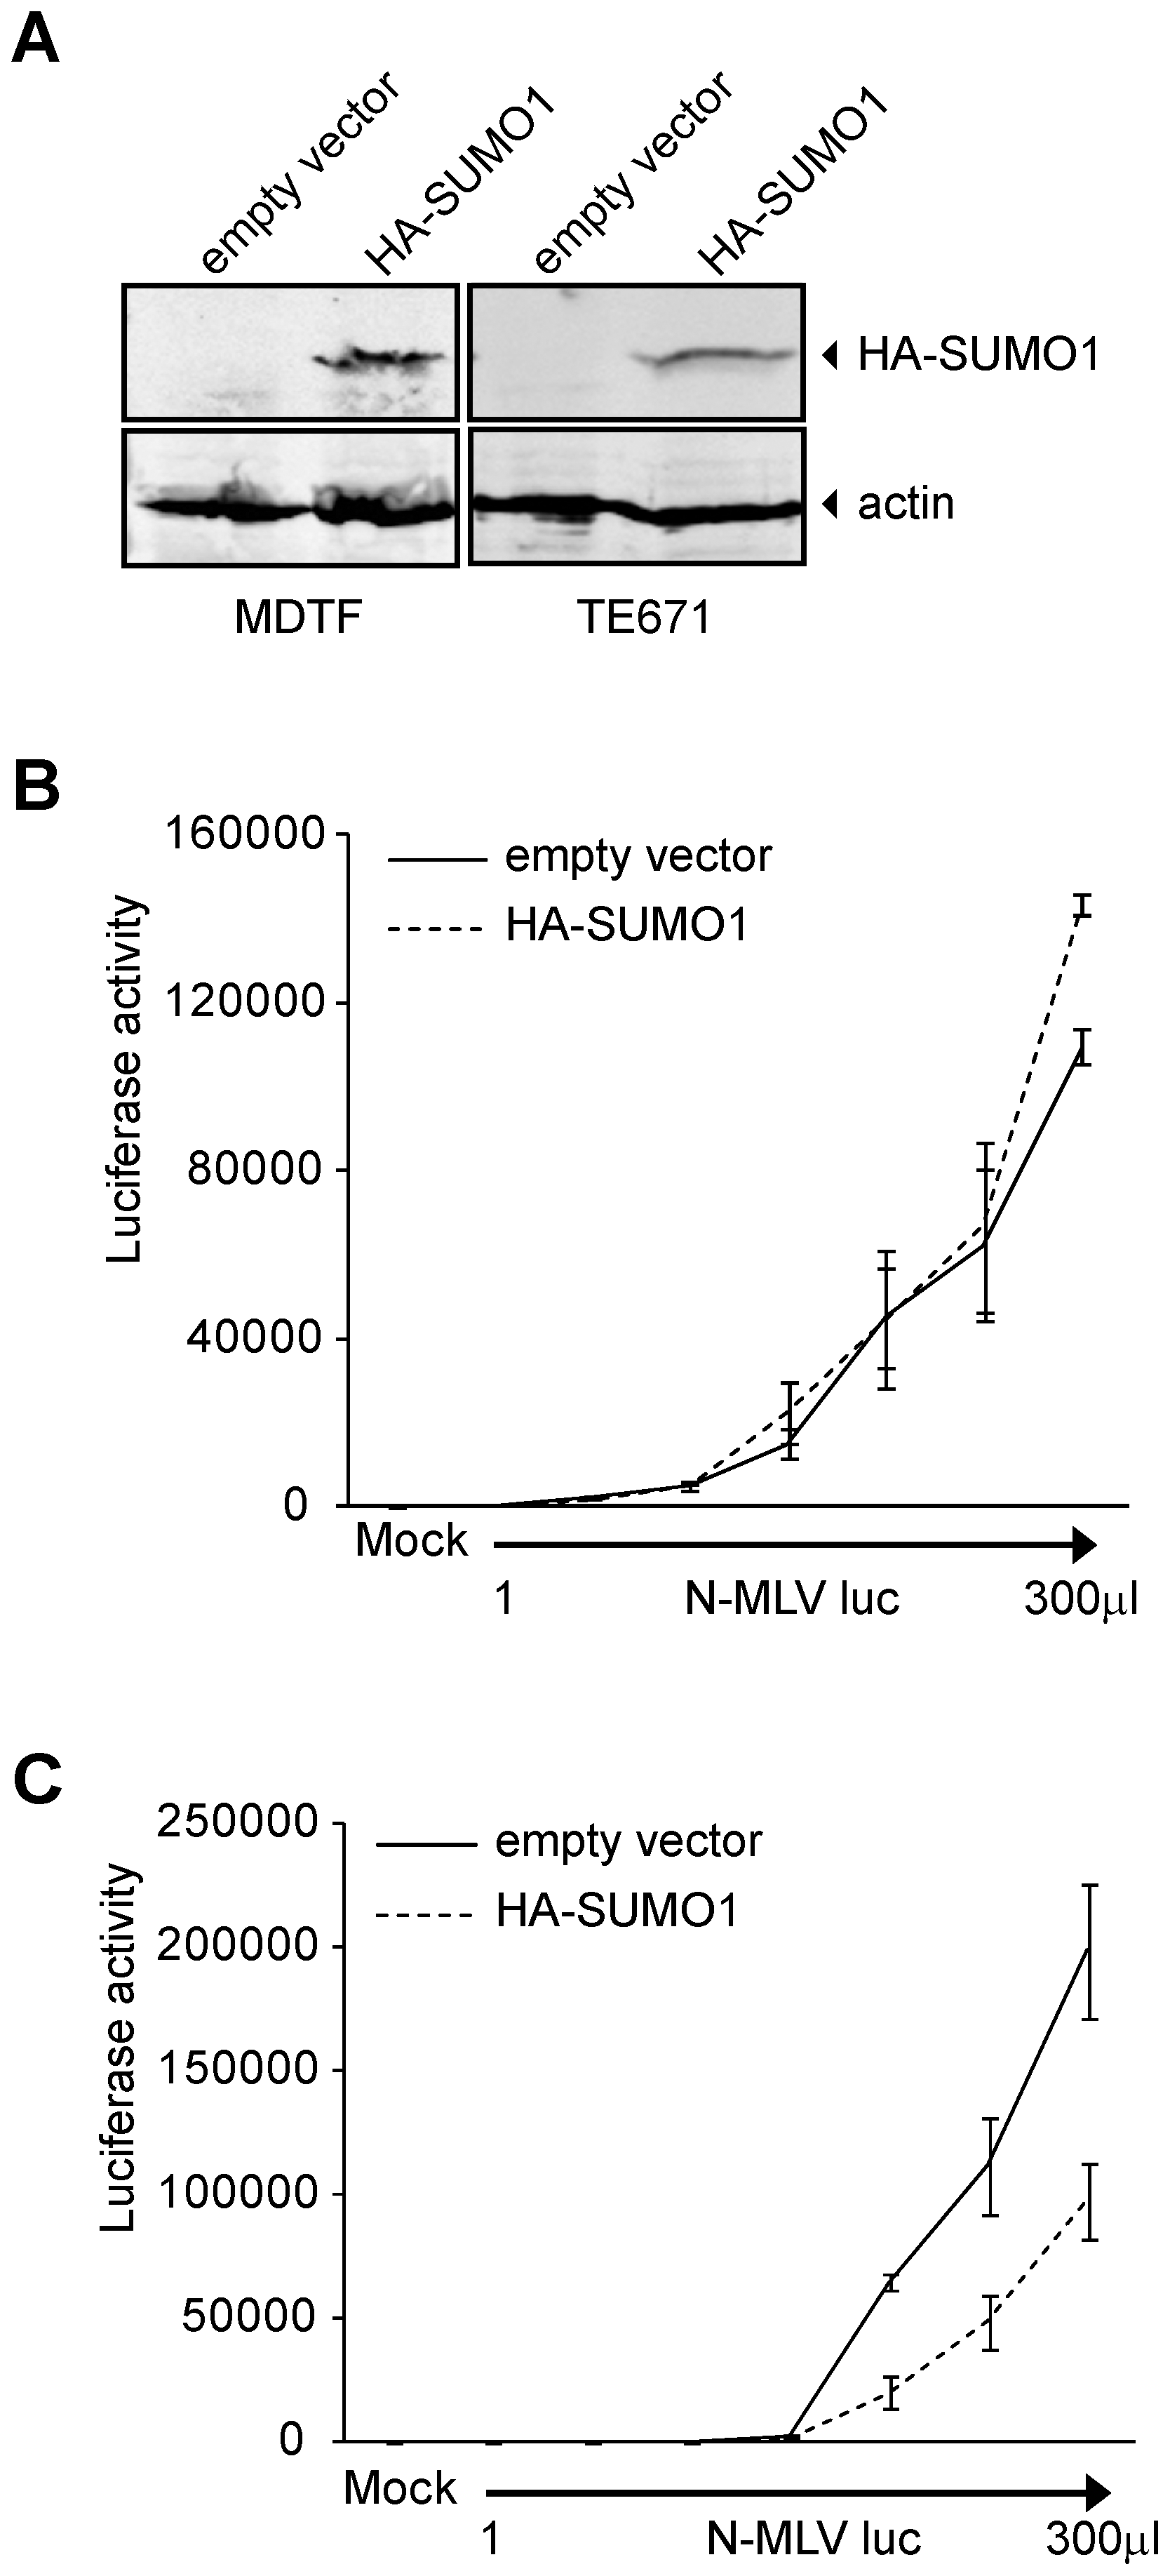 Overexpression of SUMO-1 in MDTF and TE671 cells.